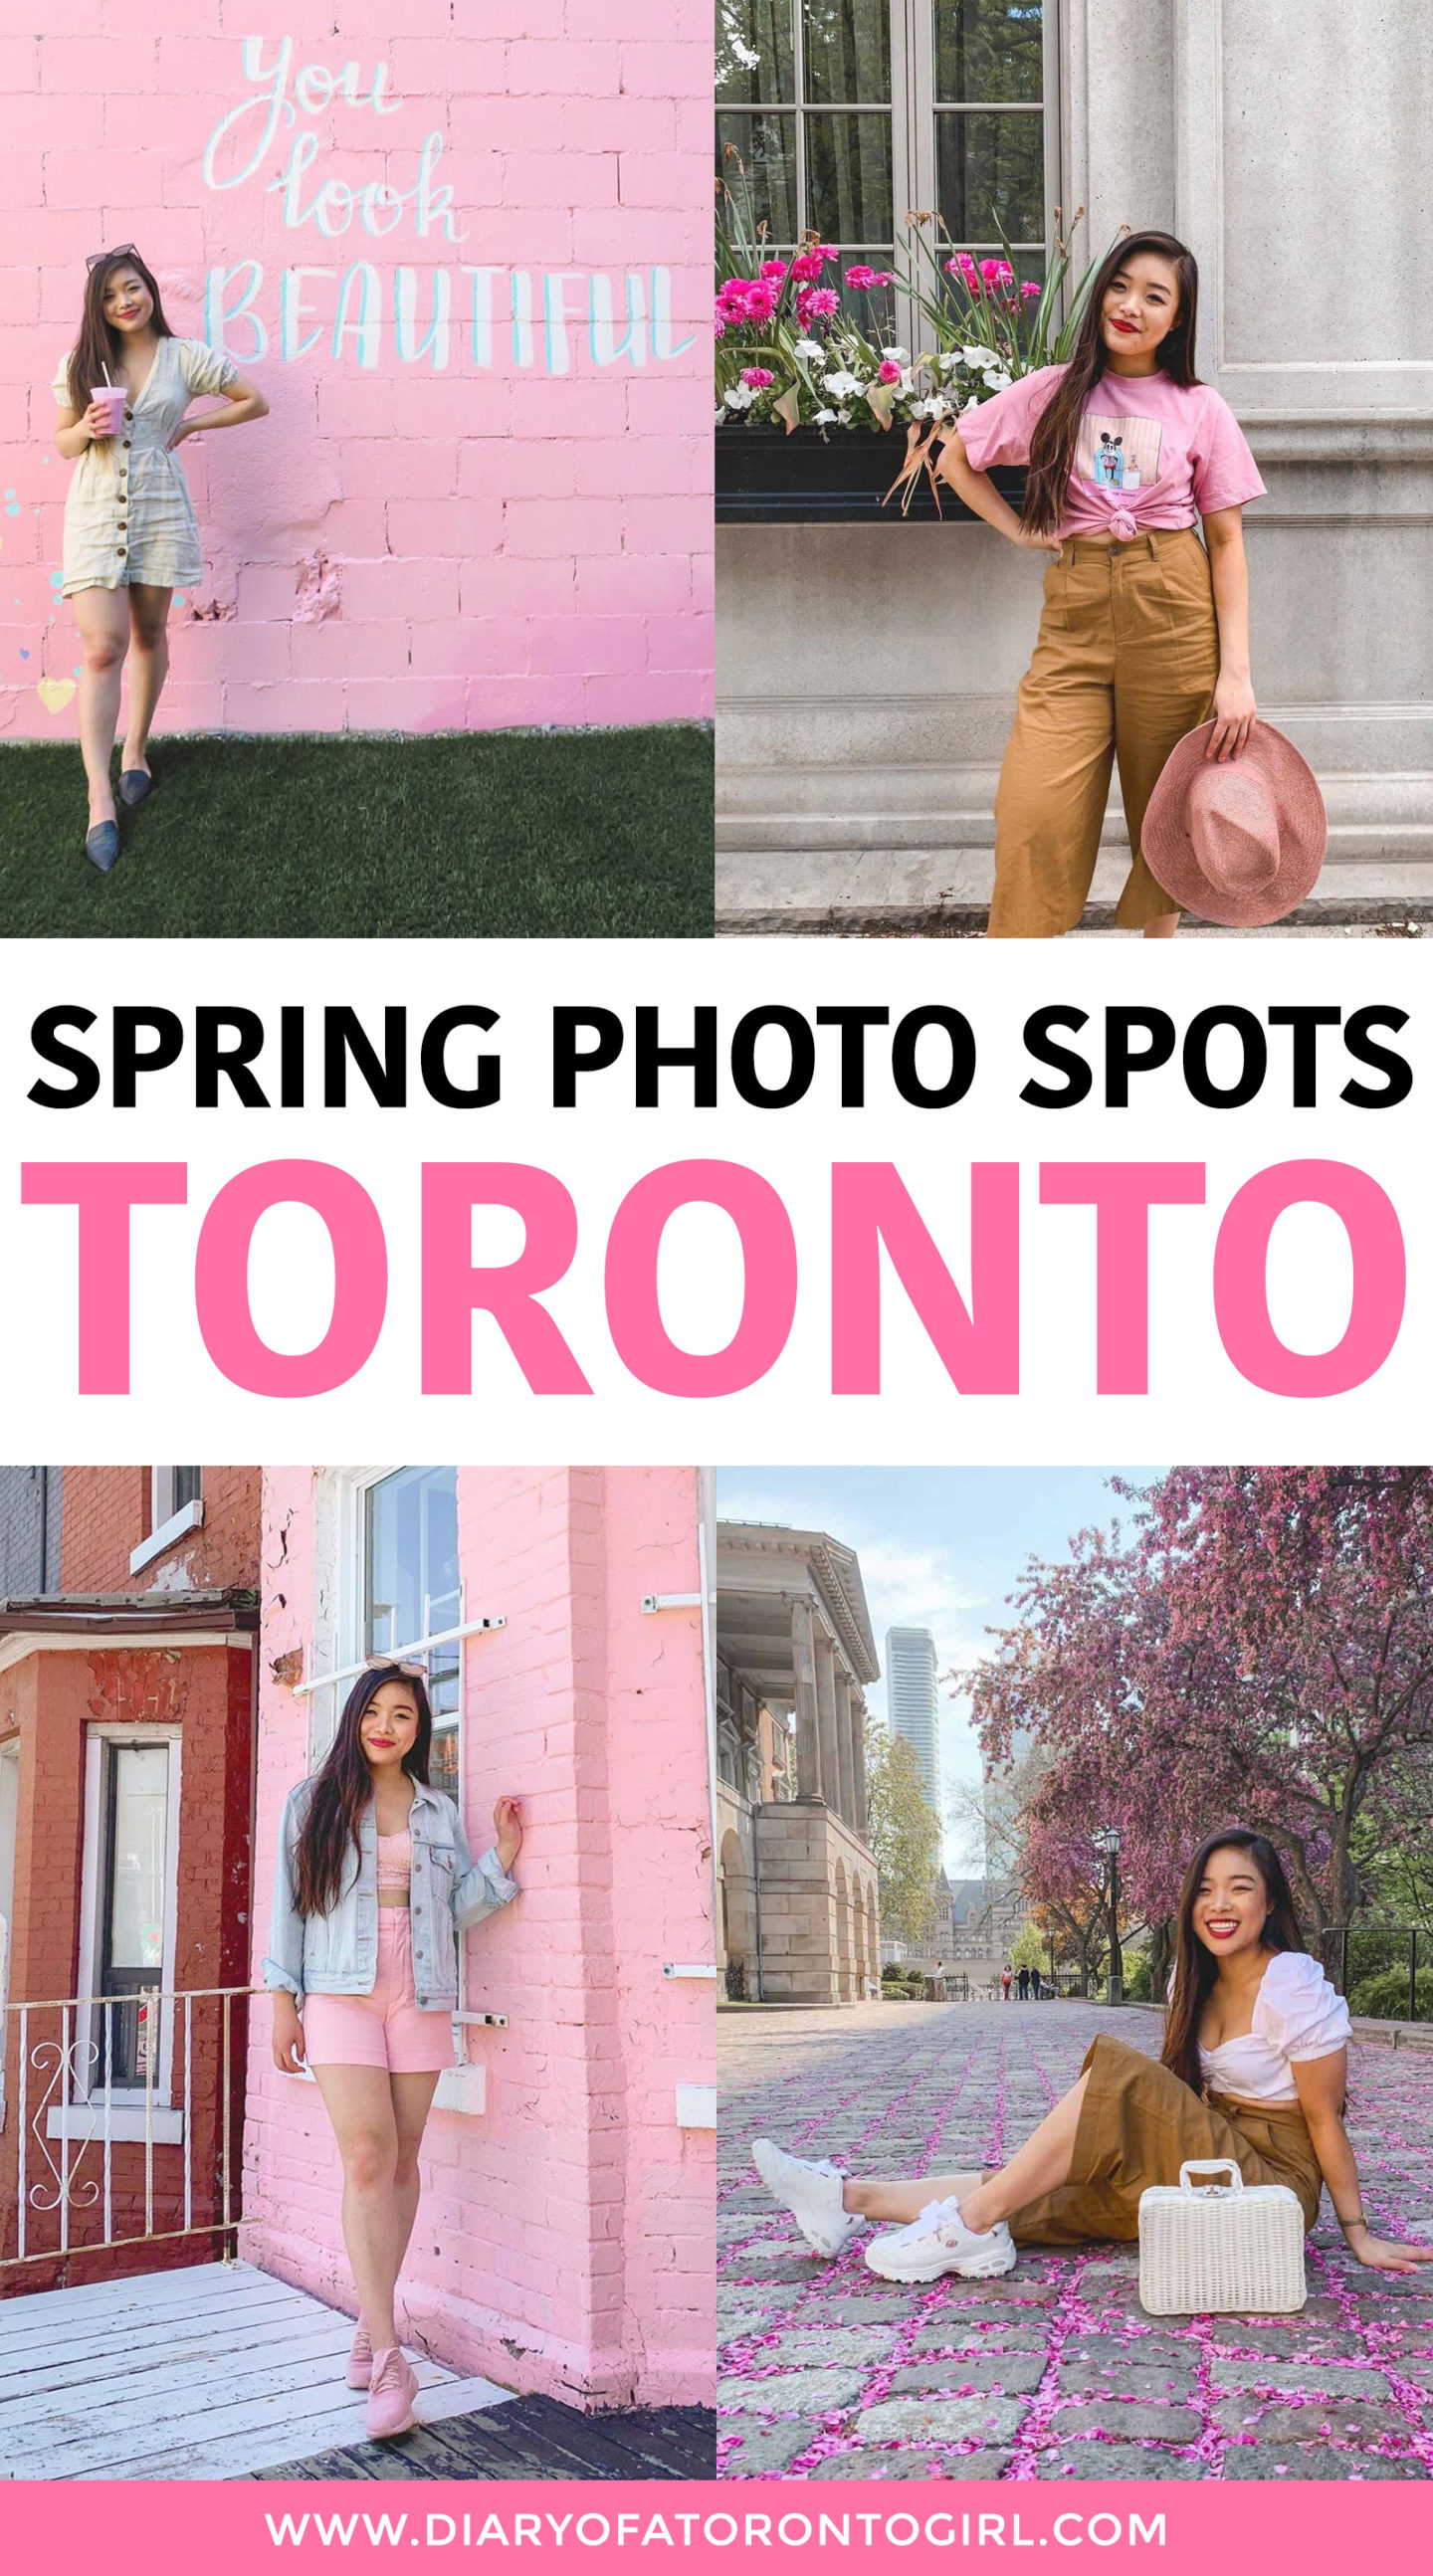 Cute spring photo spots in Toronto